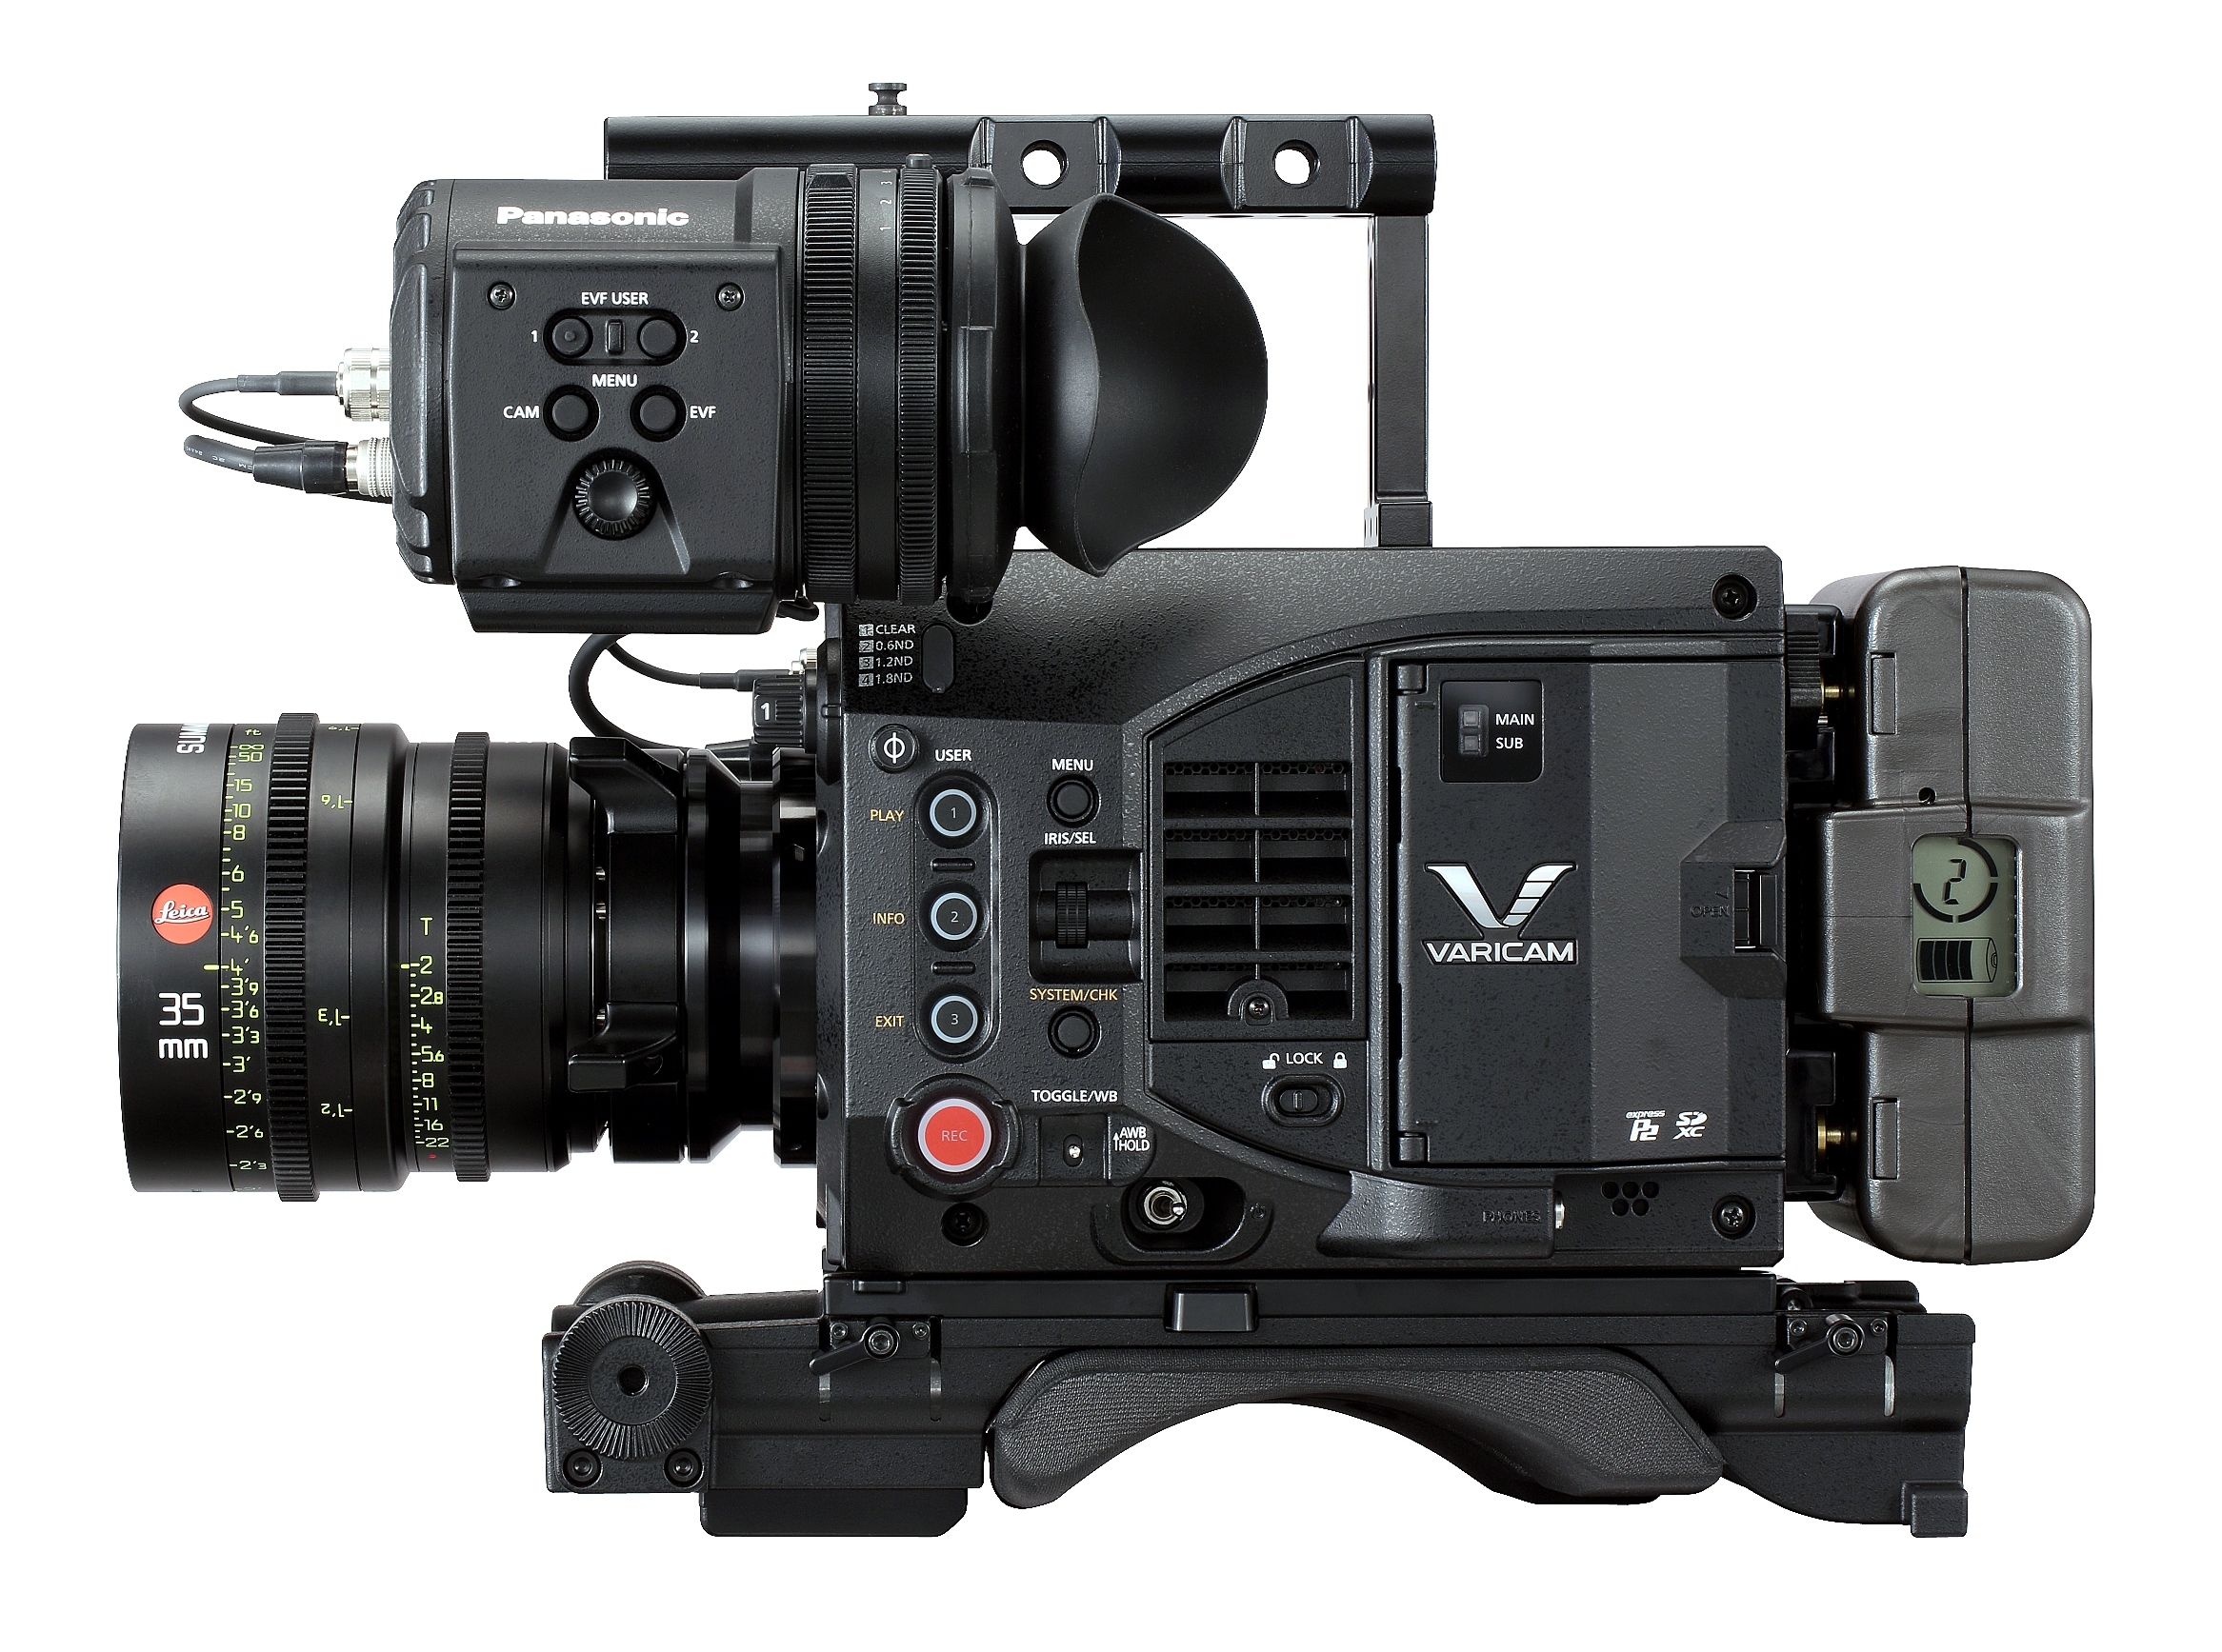 Panasonic Announces 4K Super 35 VariCam LT 5